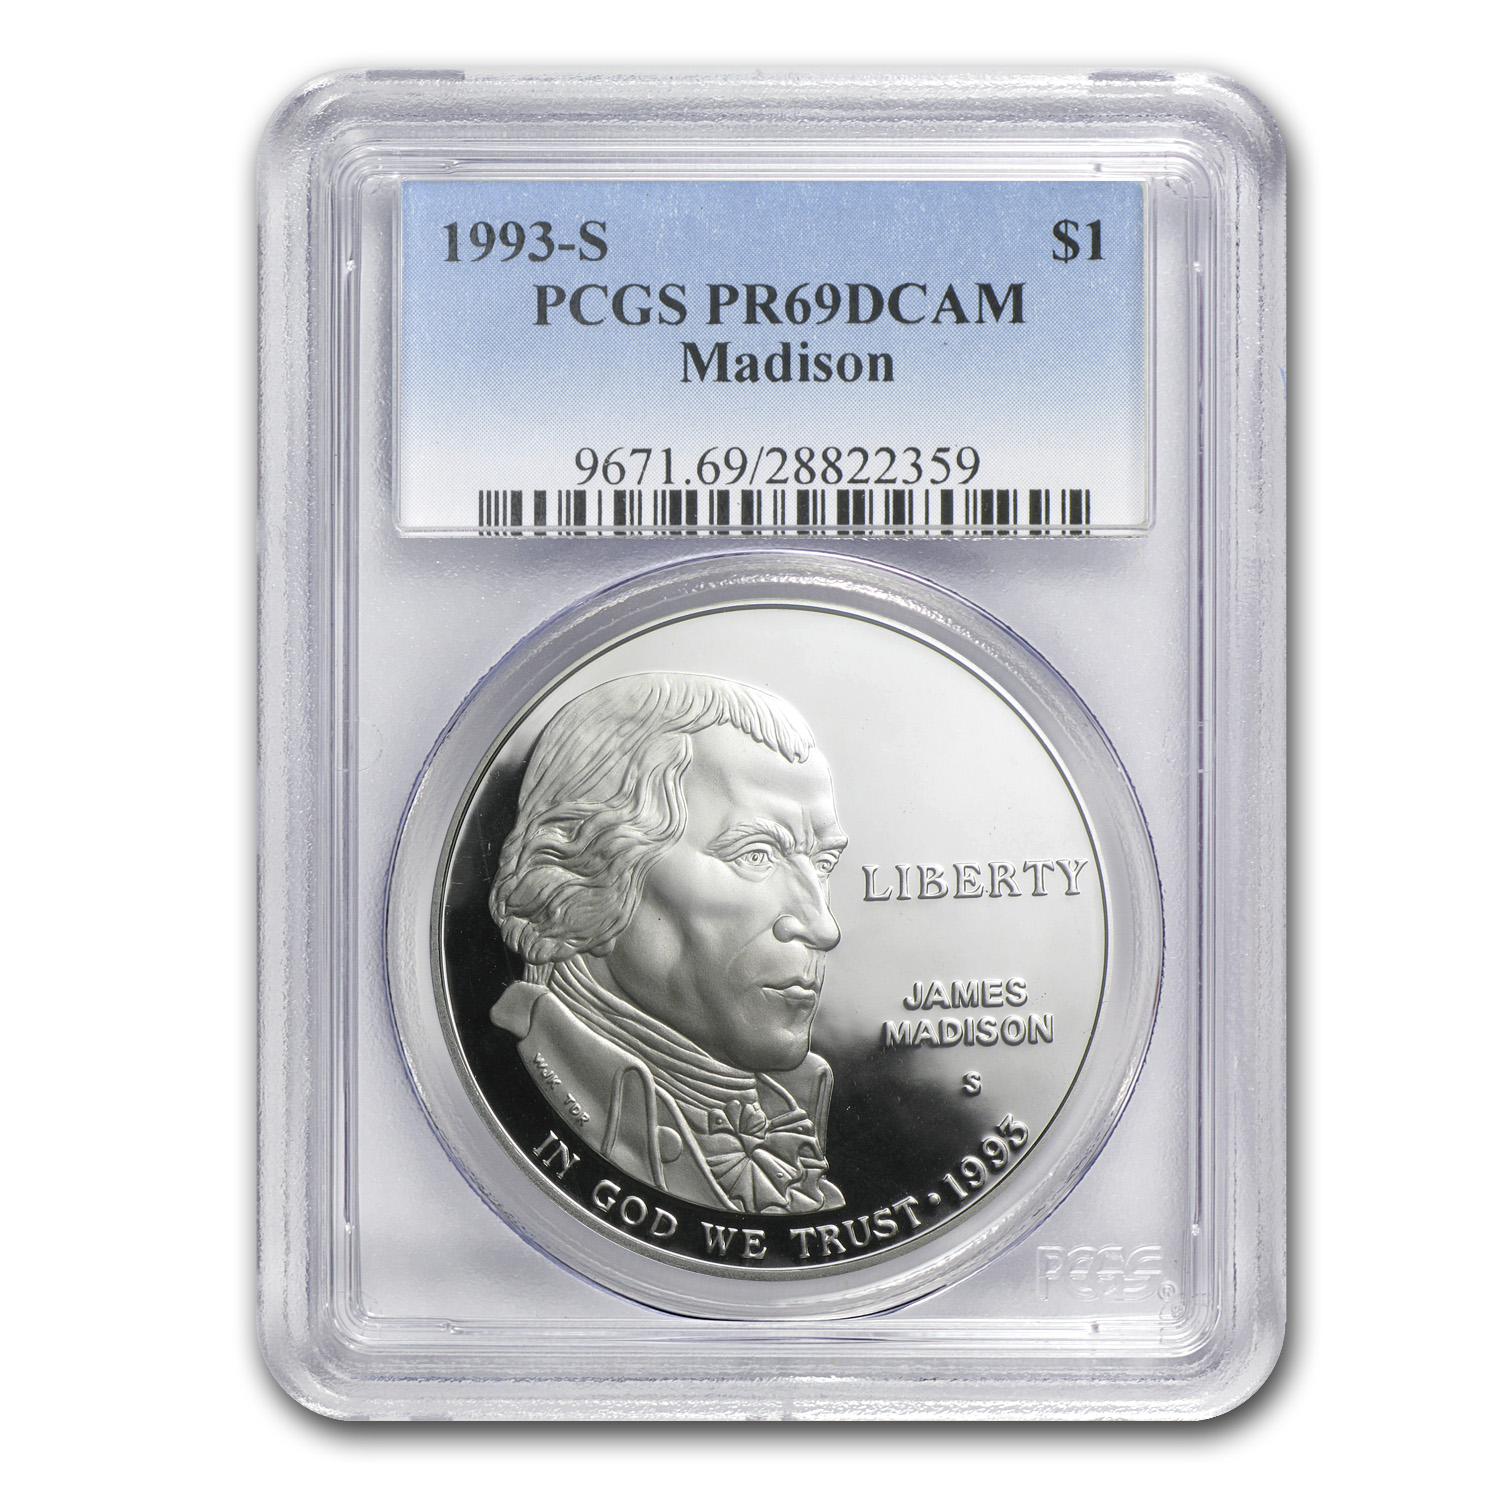 1993-S Bill of Rights-Madison $1 Silver Commem PR-69 PCGS